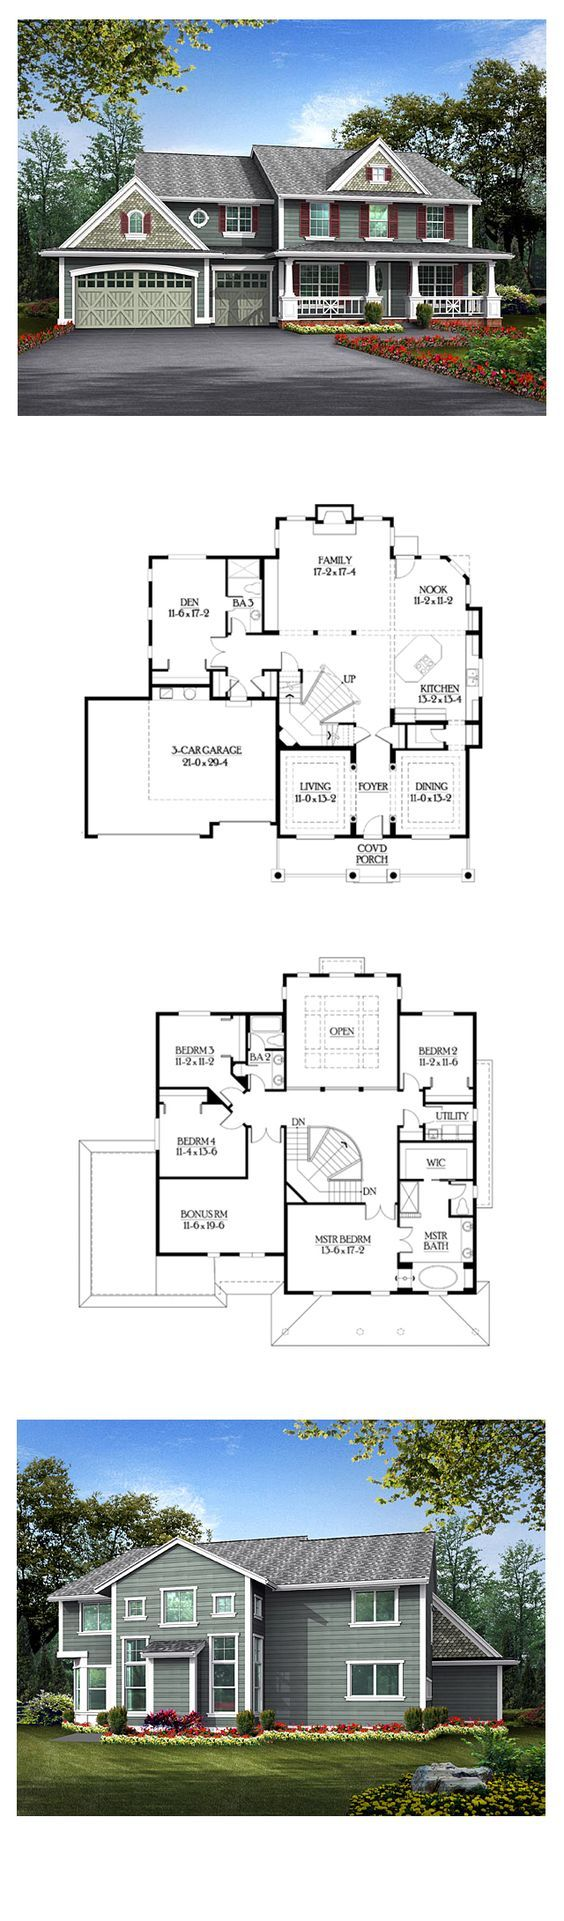 Luxury house plan 87651 total living area 3624 sq ft 4 bedrooms 3 bathrooms